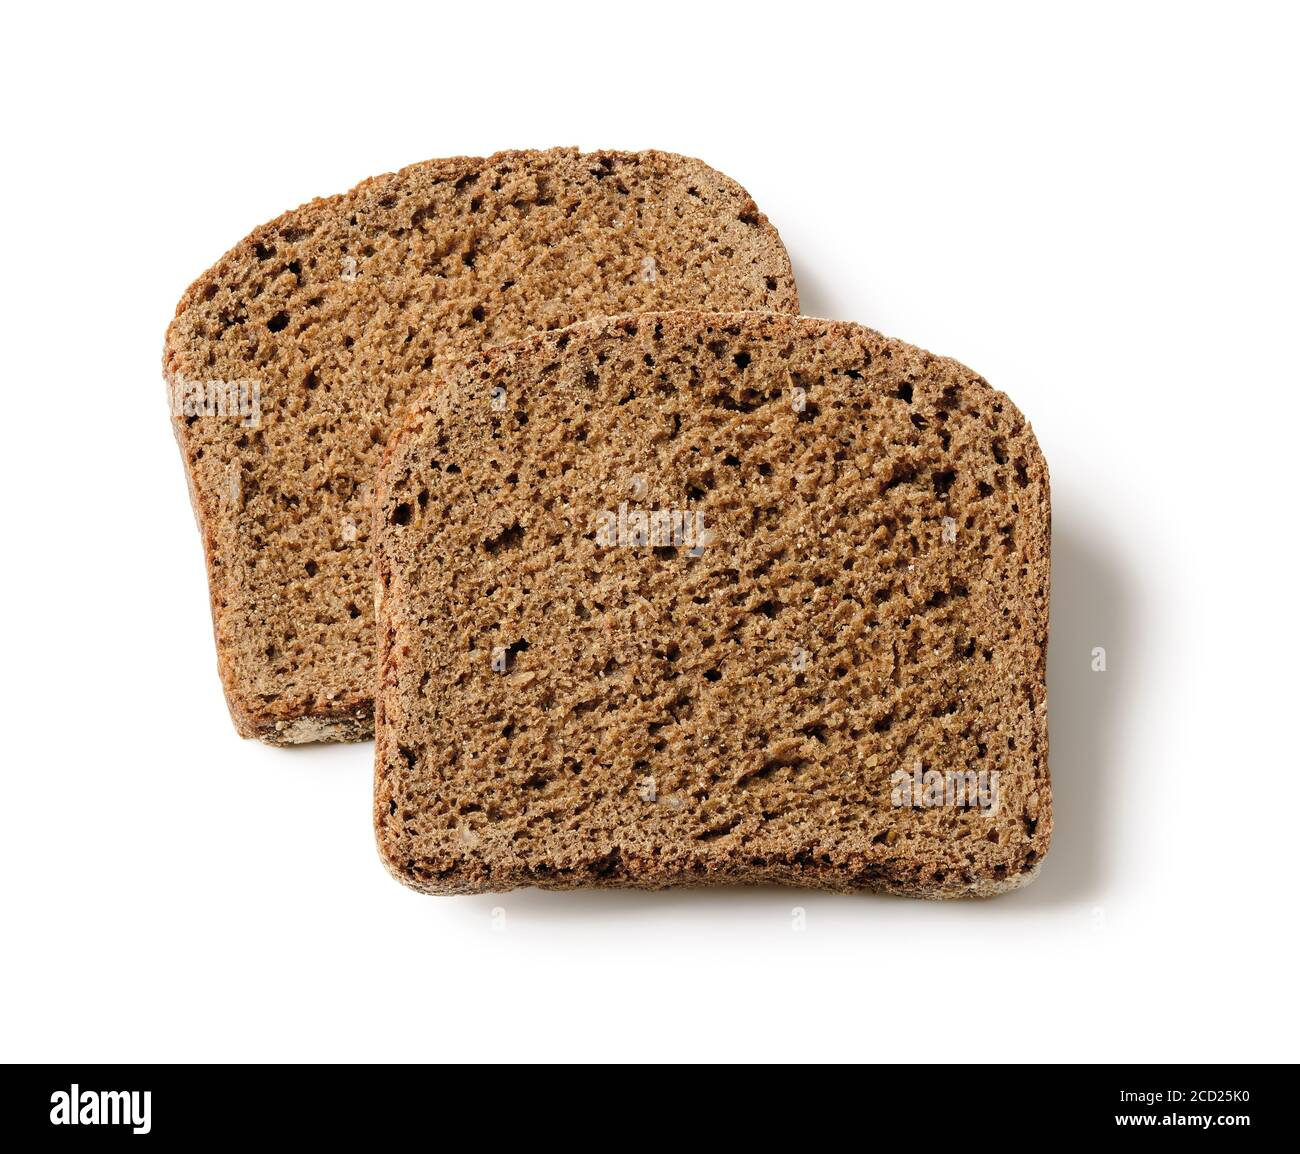 Two Rectangular Slices Of Fresh Rye Bread Isolated On White Background Low Calorie Whole Grain Sourdough Bread Baking Of Dough And Healthy Eating Stock Photo Alamy